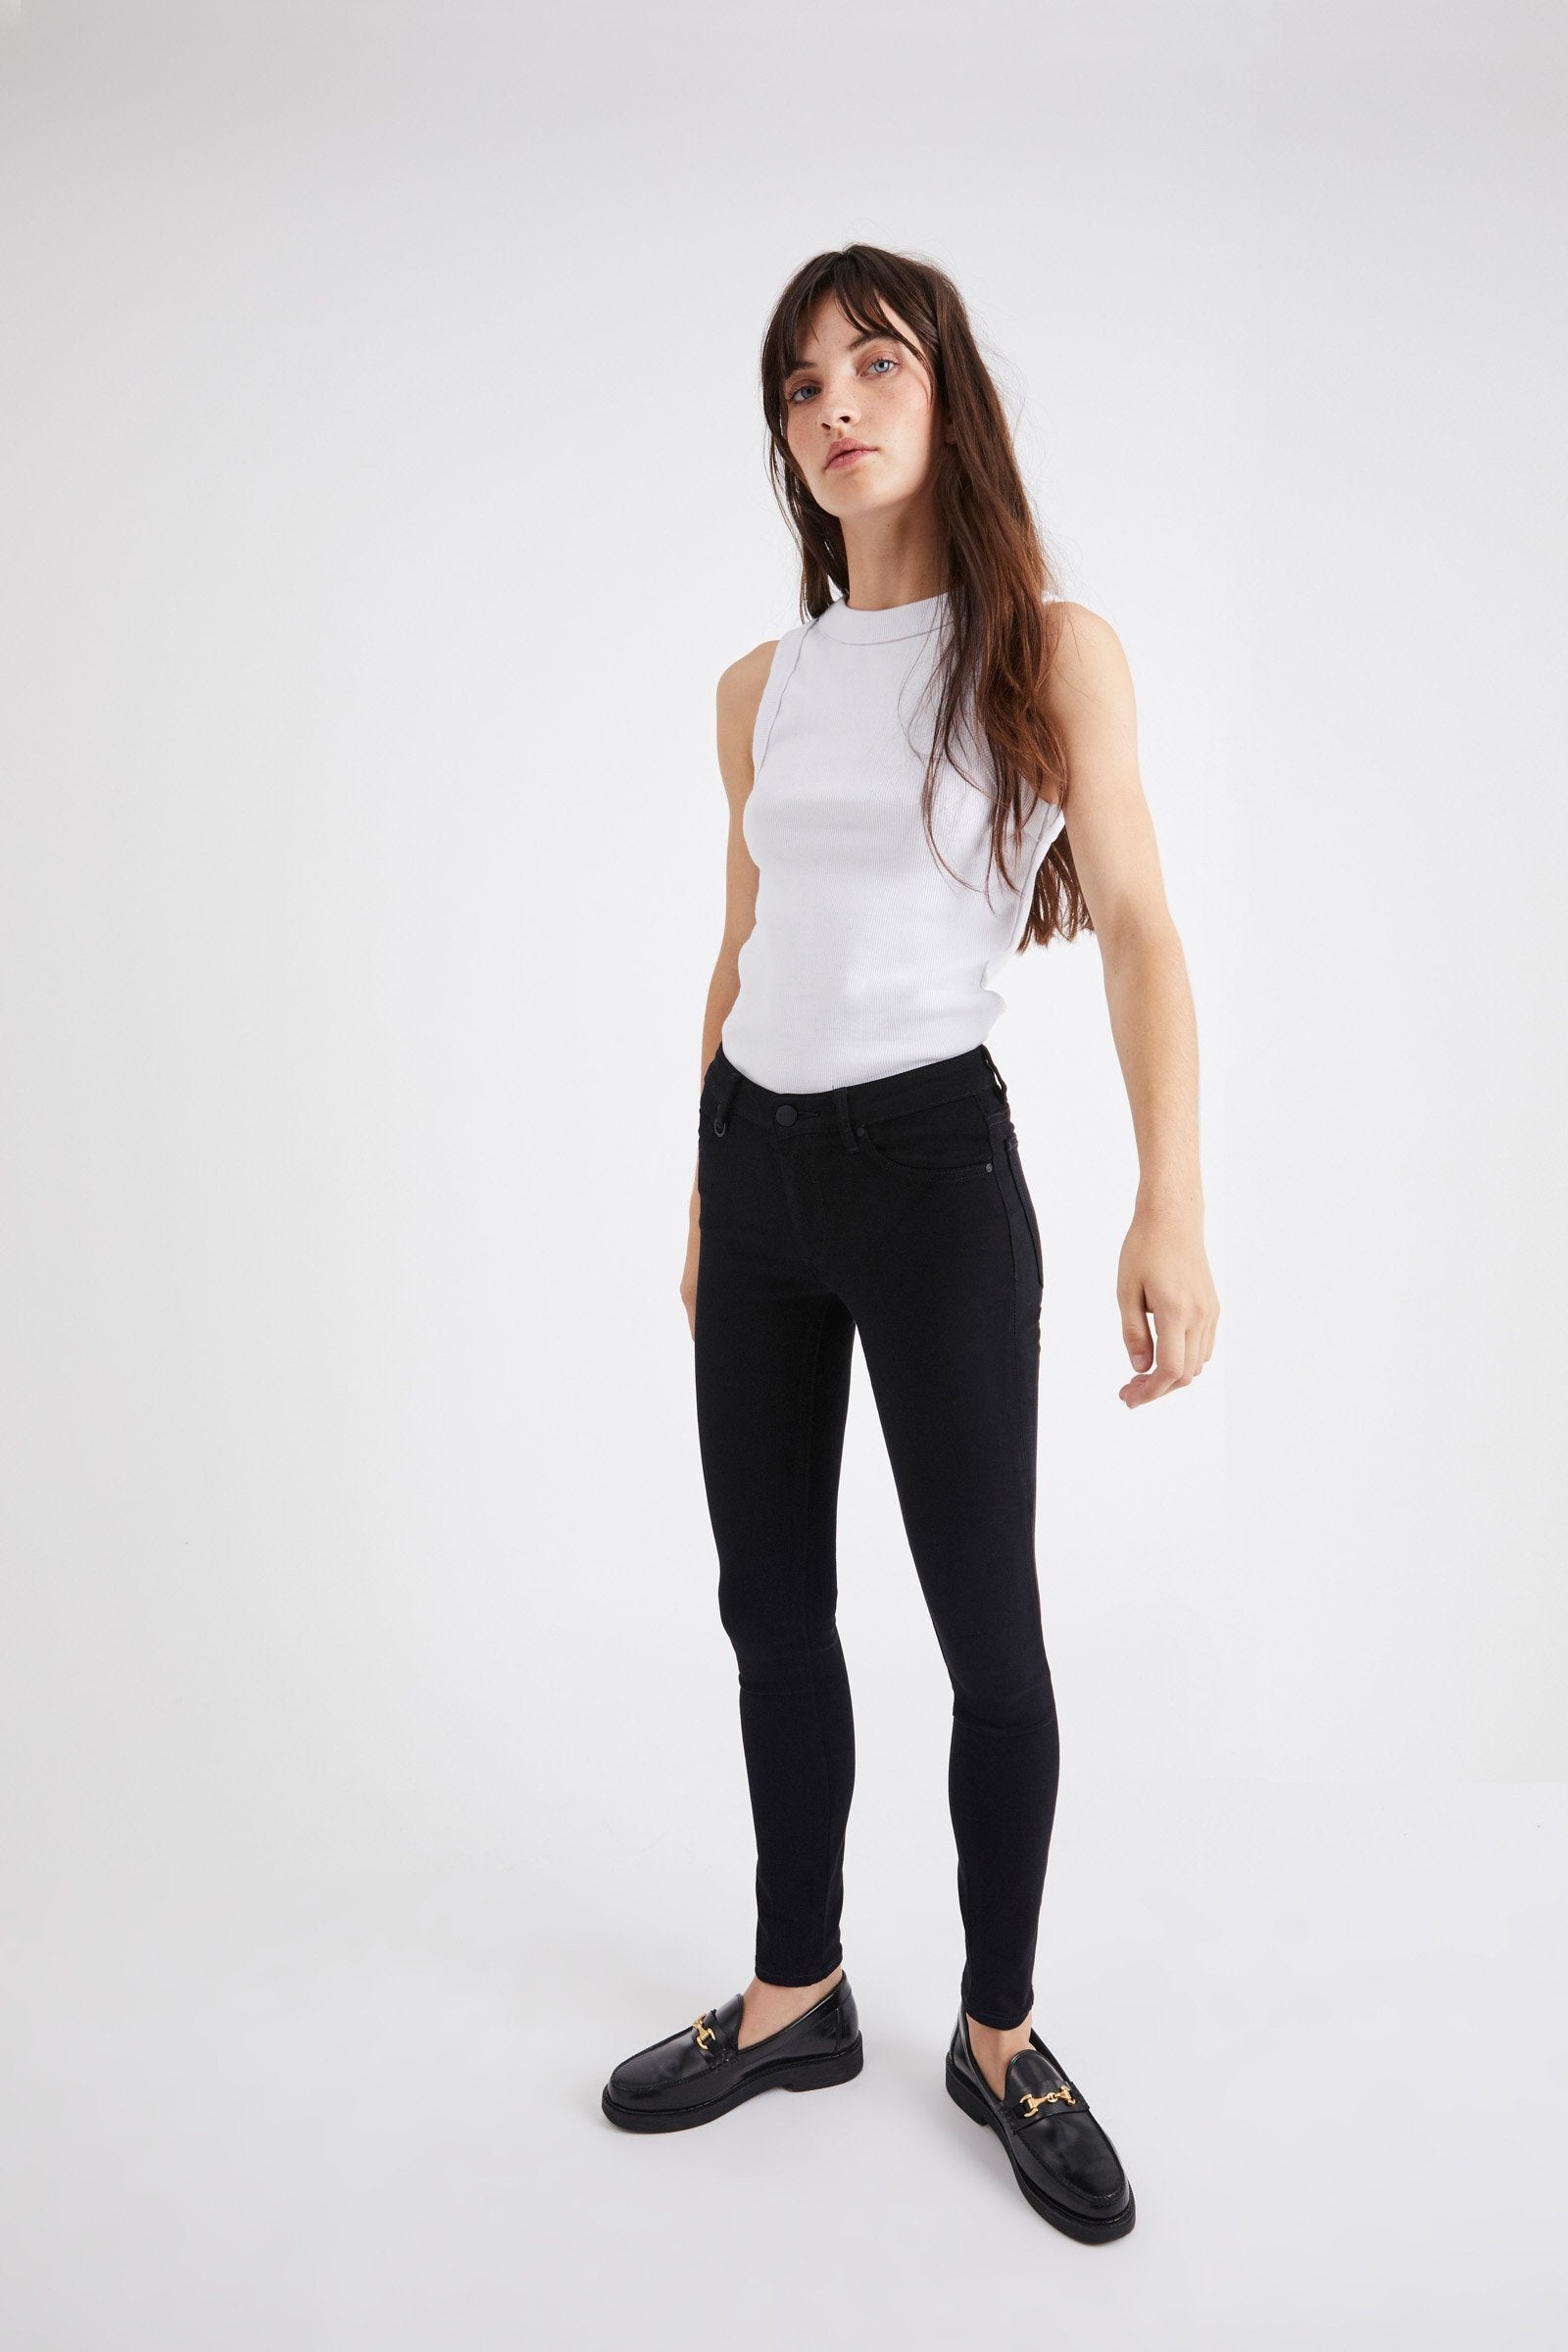 NEUW Bowery Skinny Jean in Black Silk 32""